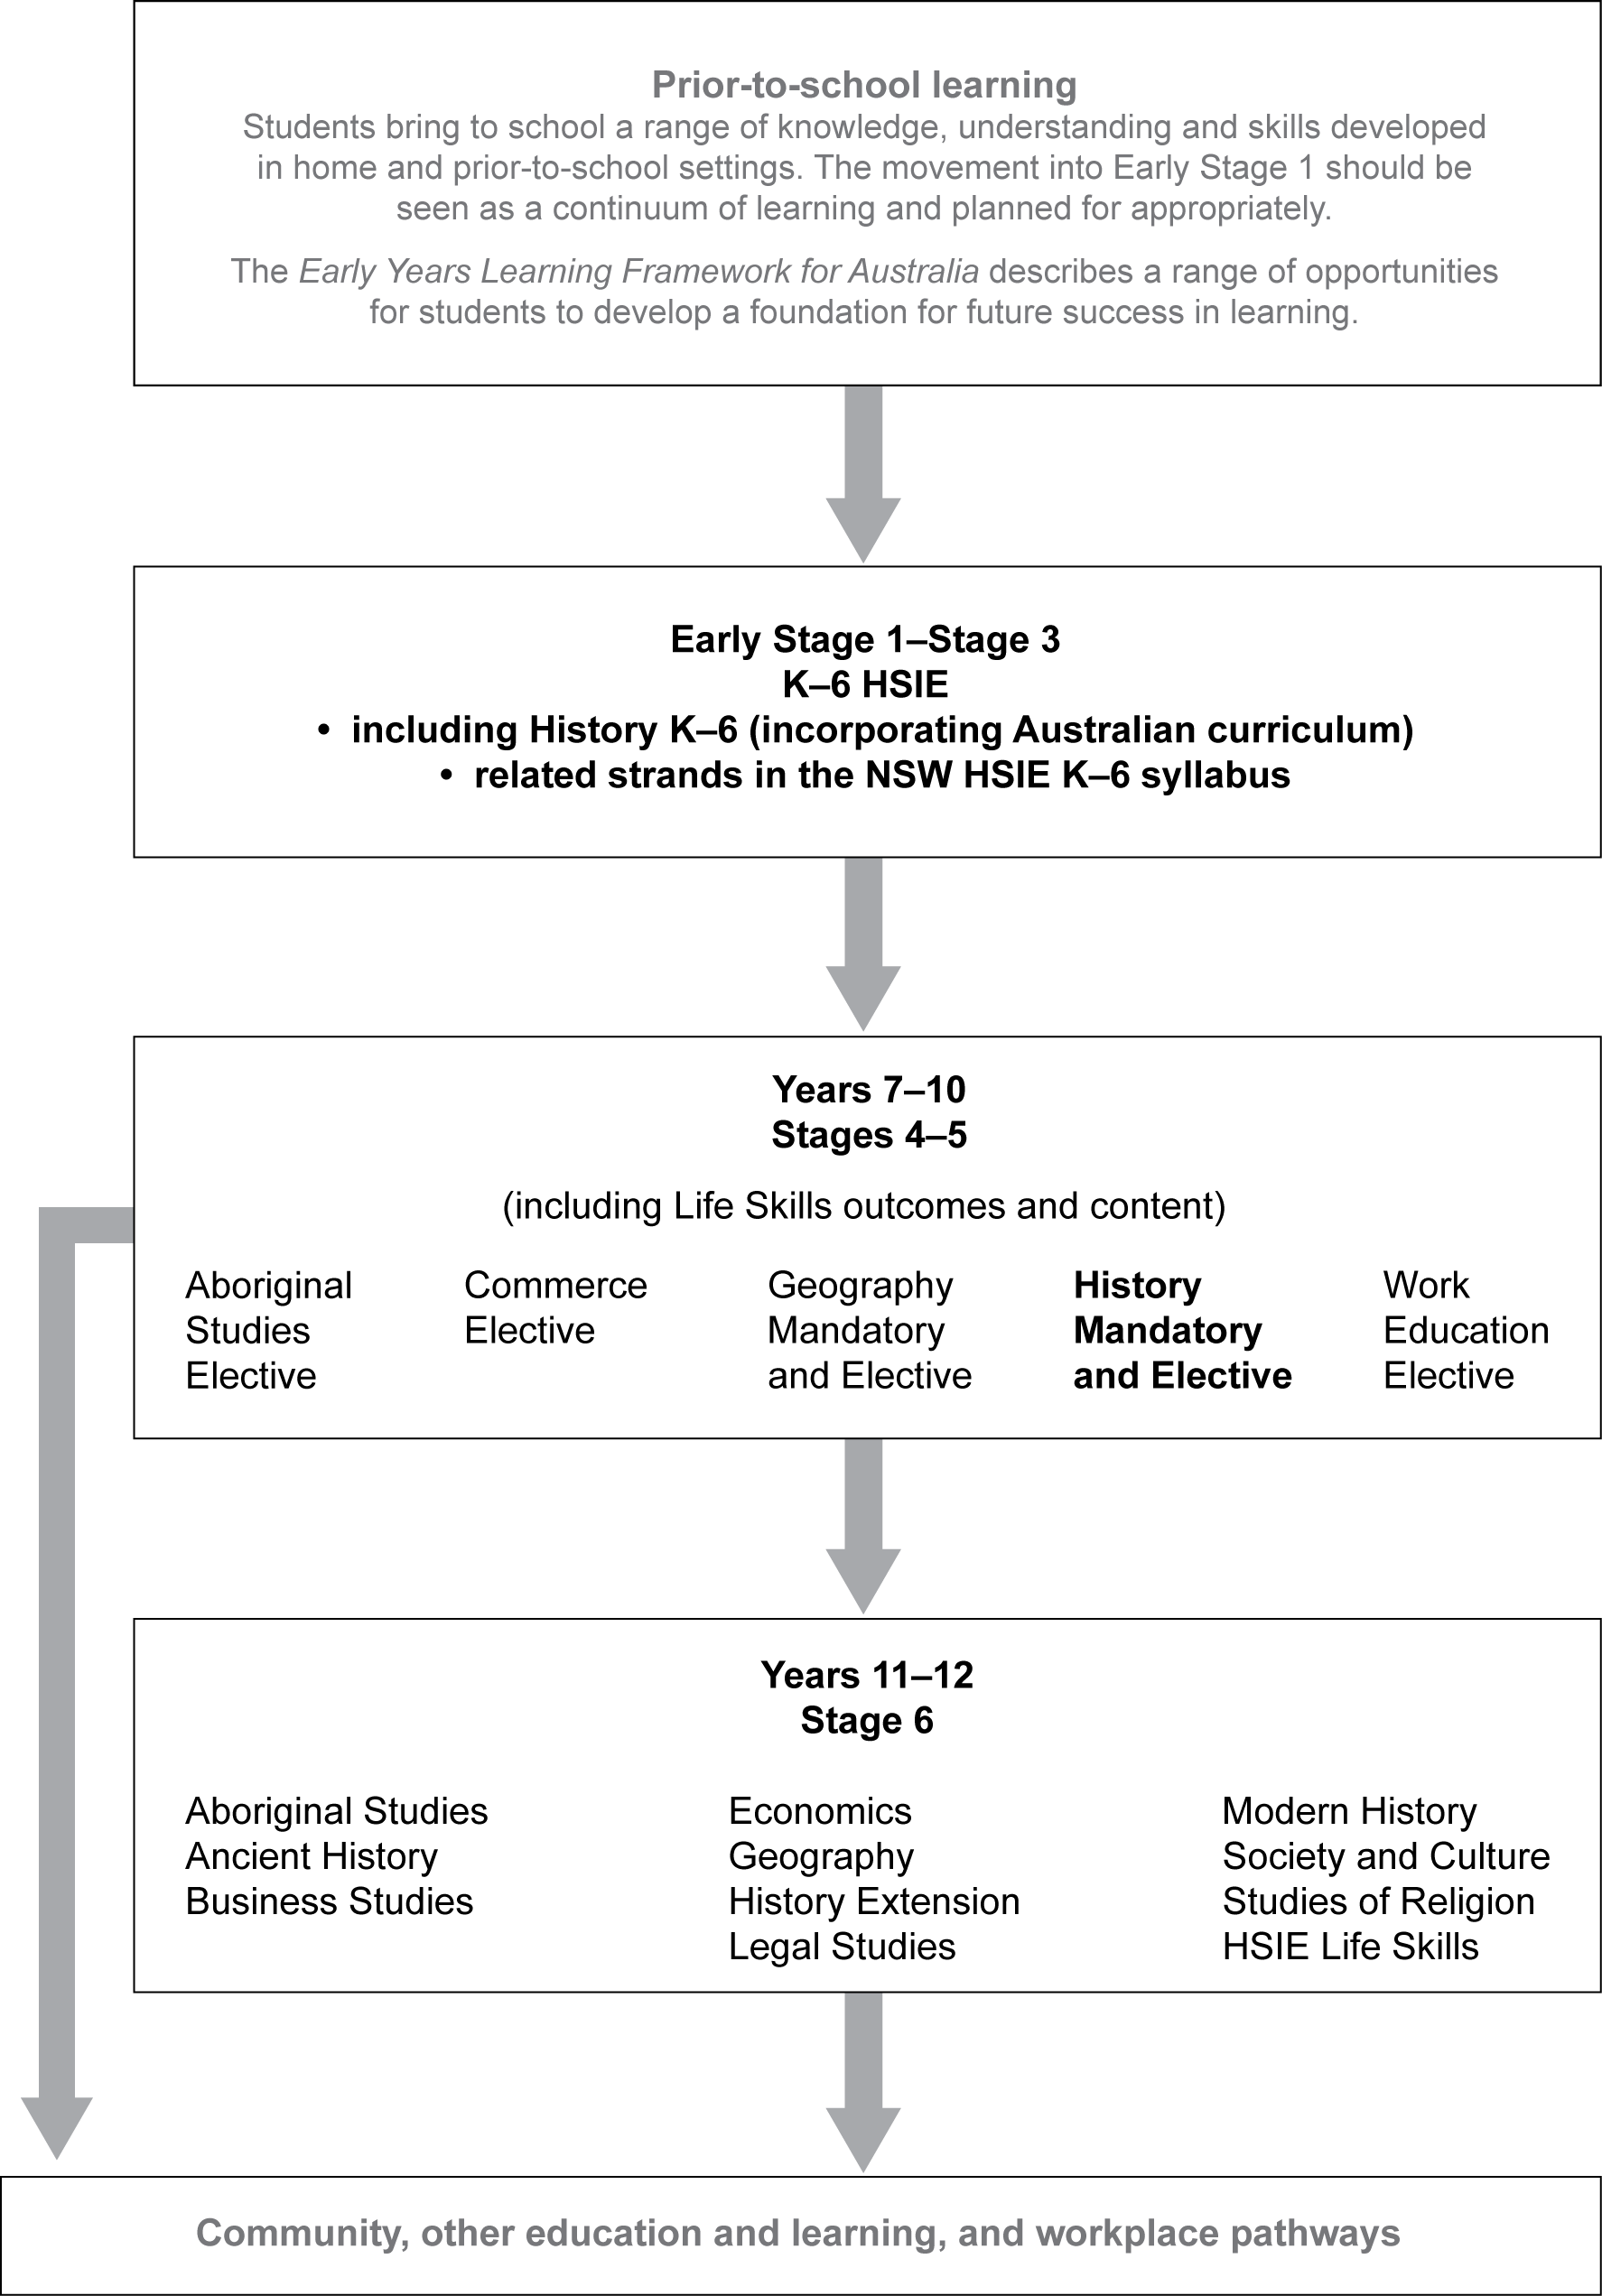 This diagram shows the relationship between the History K – 10 syllabus and the stages of learning before and after it in the K-12 curriculum.